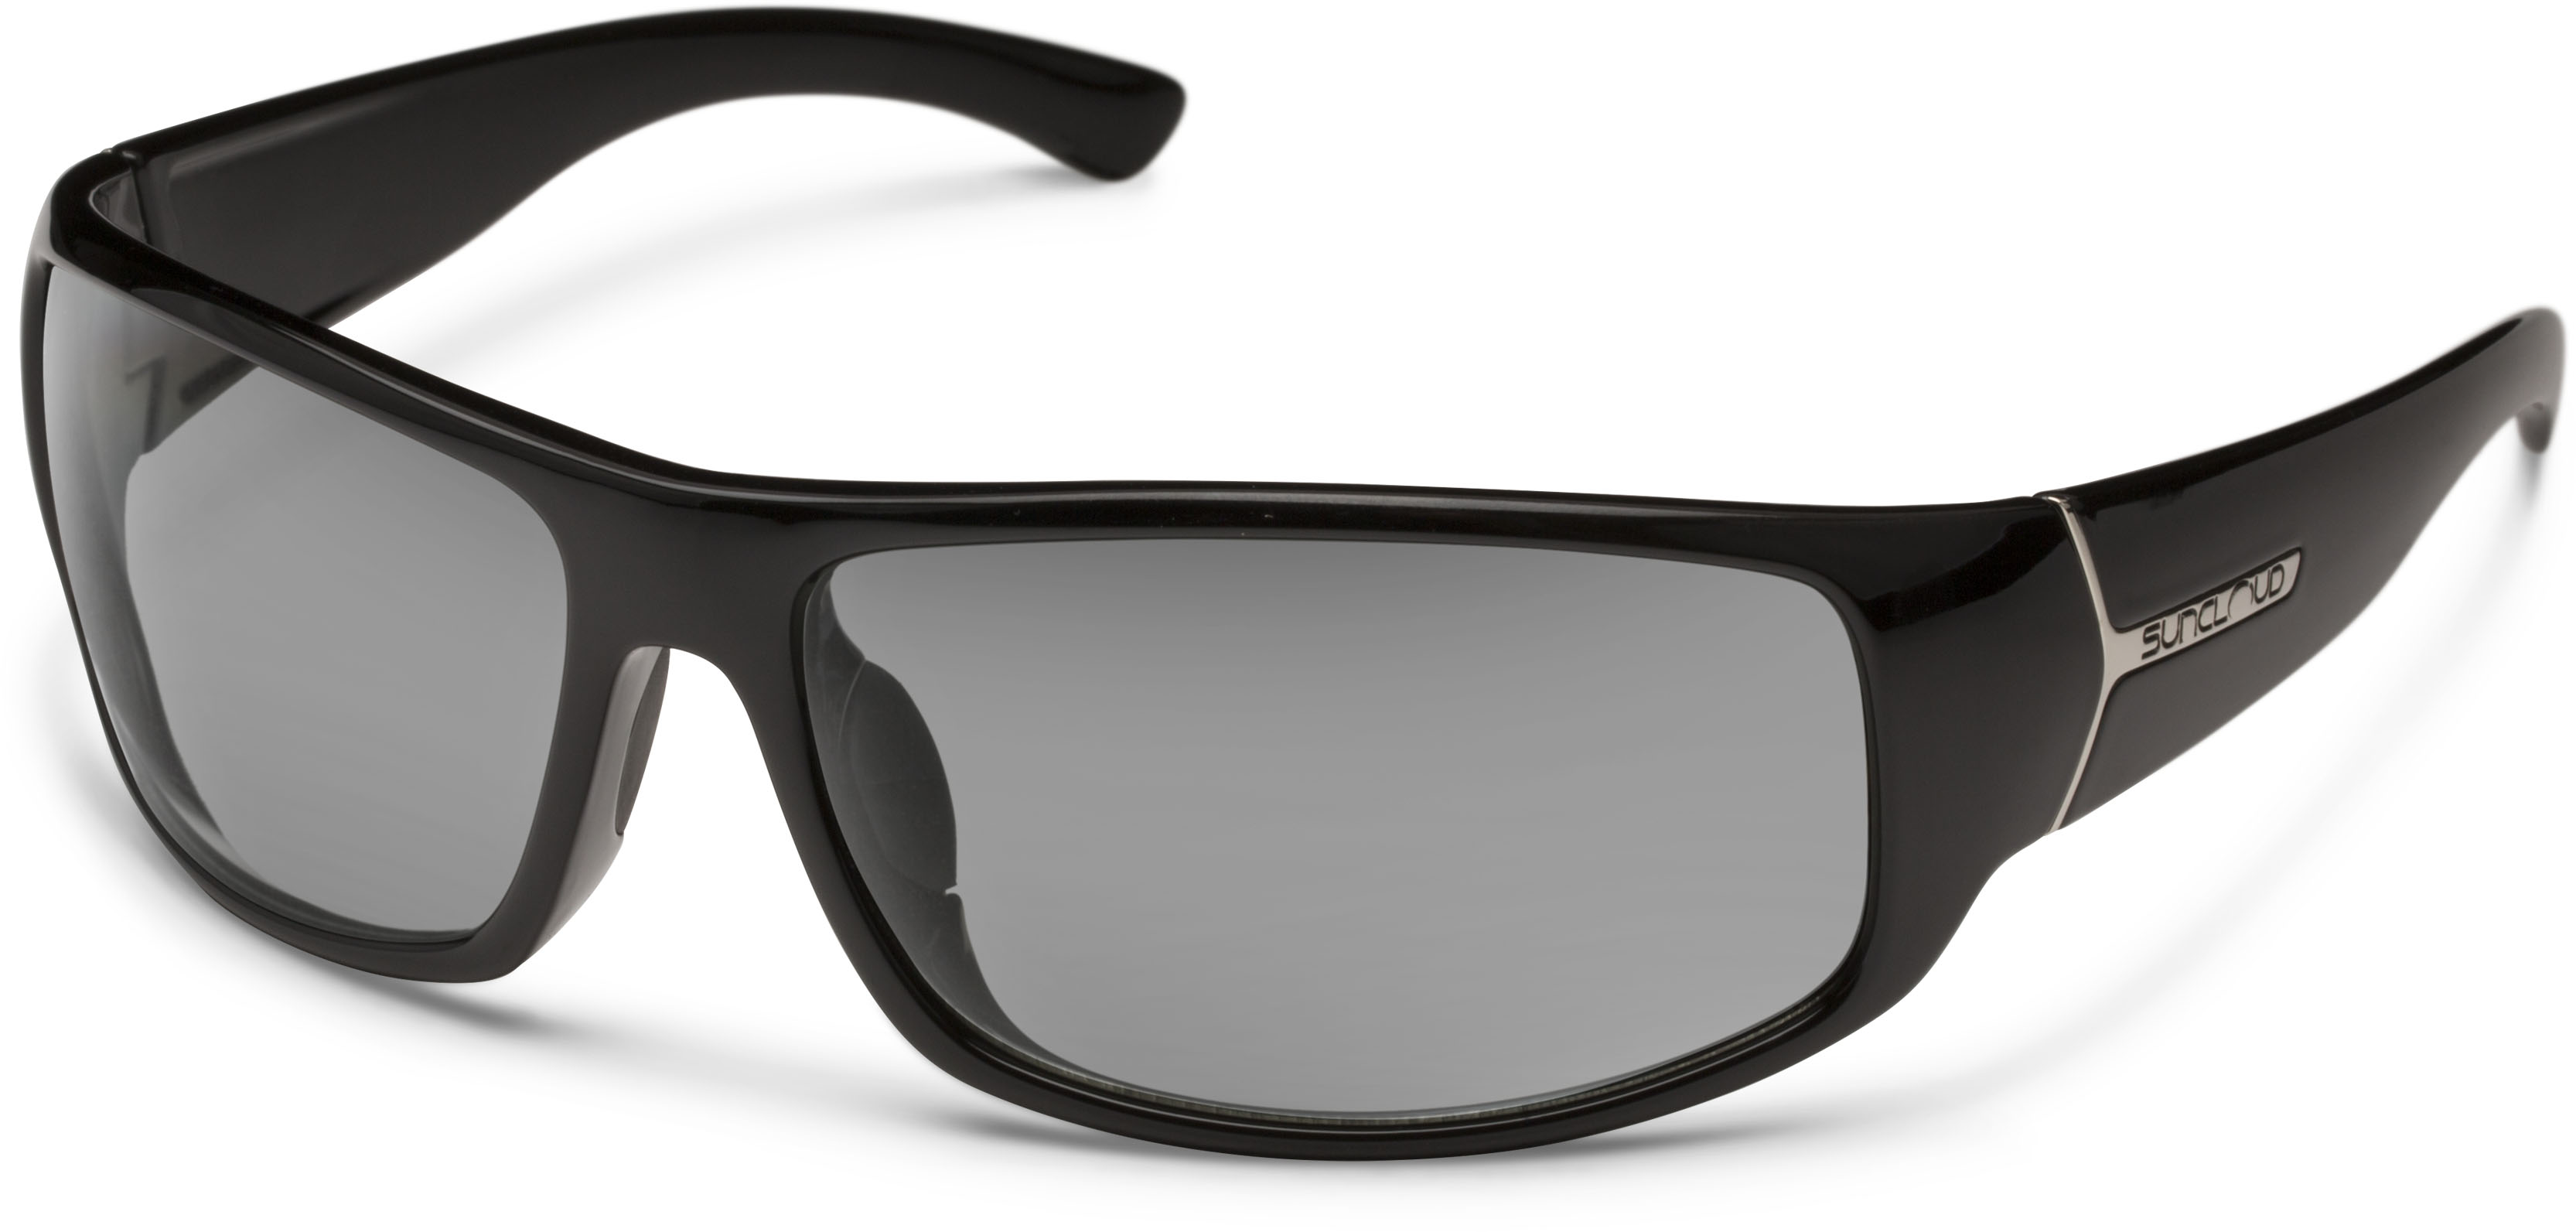 64df689cafd Suncloud Optics Turbine Sunglass Polarized Polycarbonate Lens   Black Gray  Frame